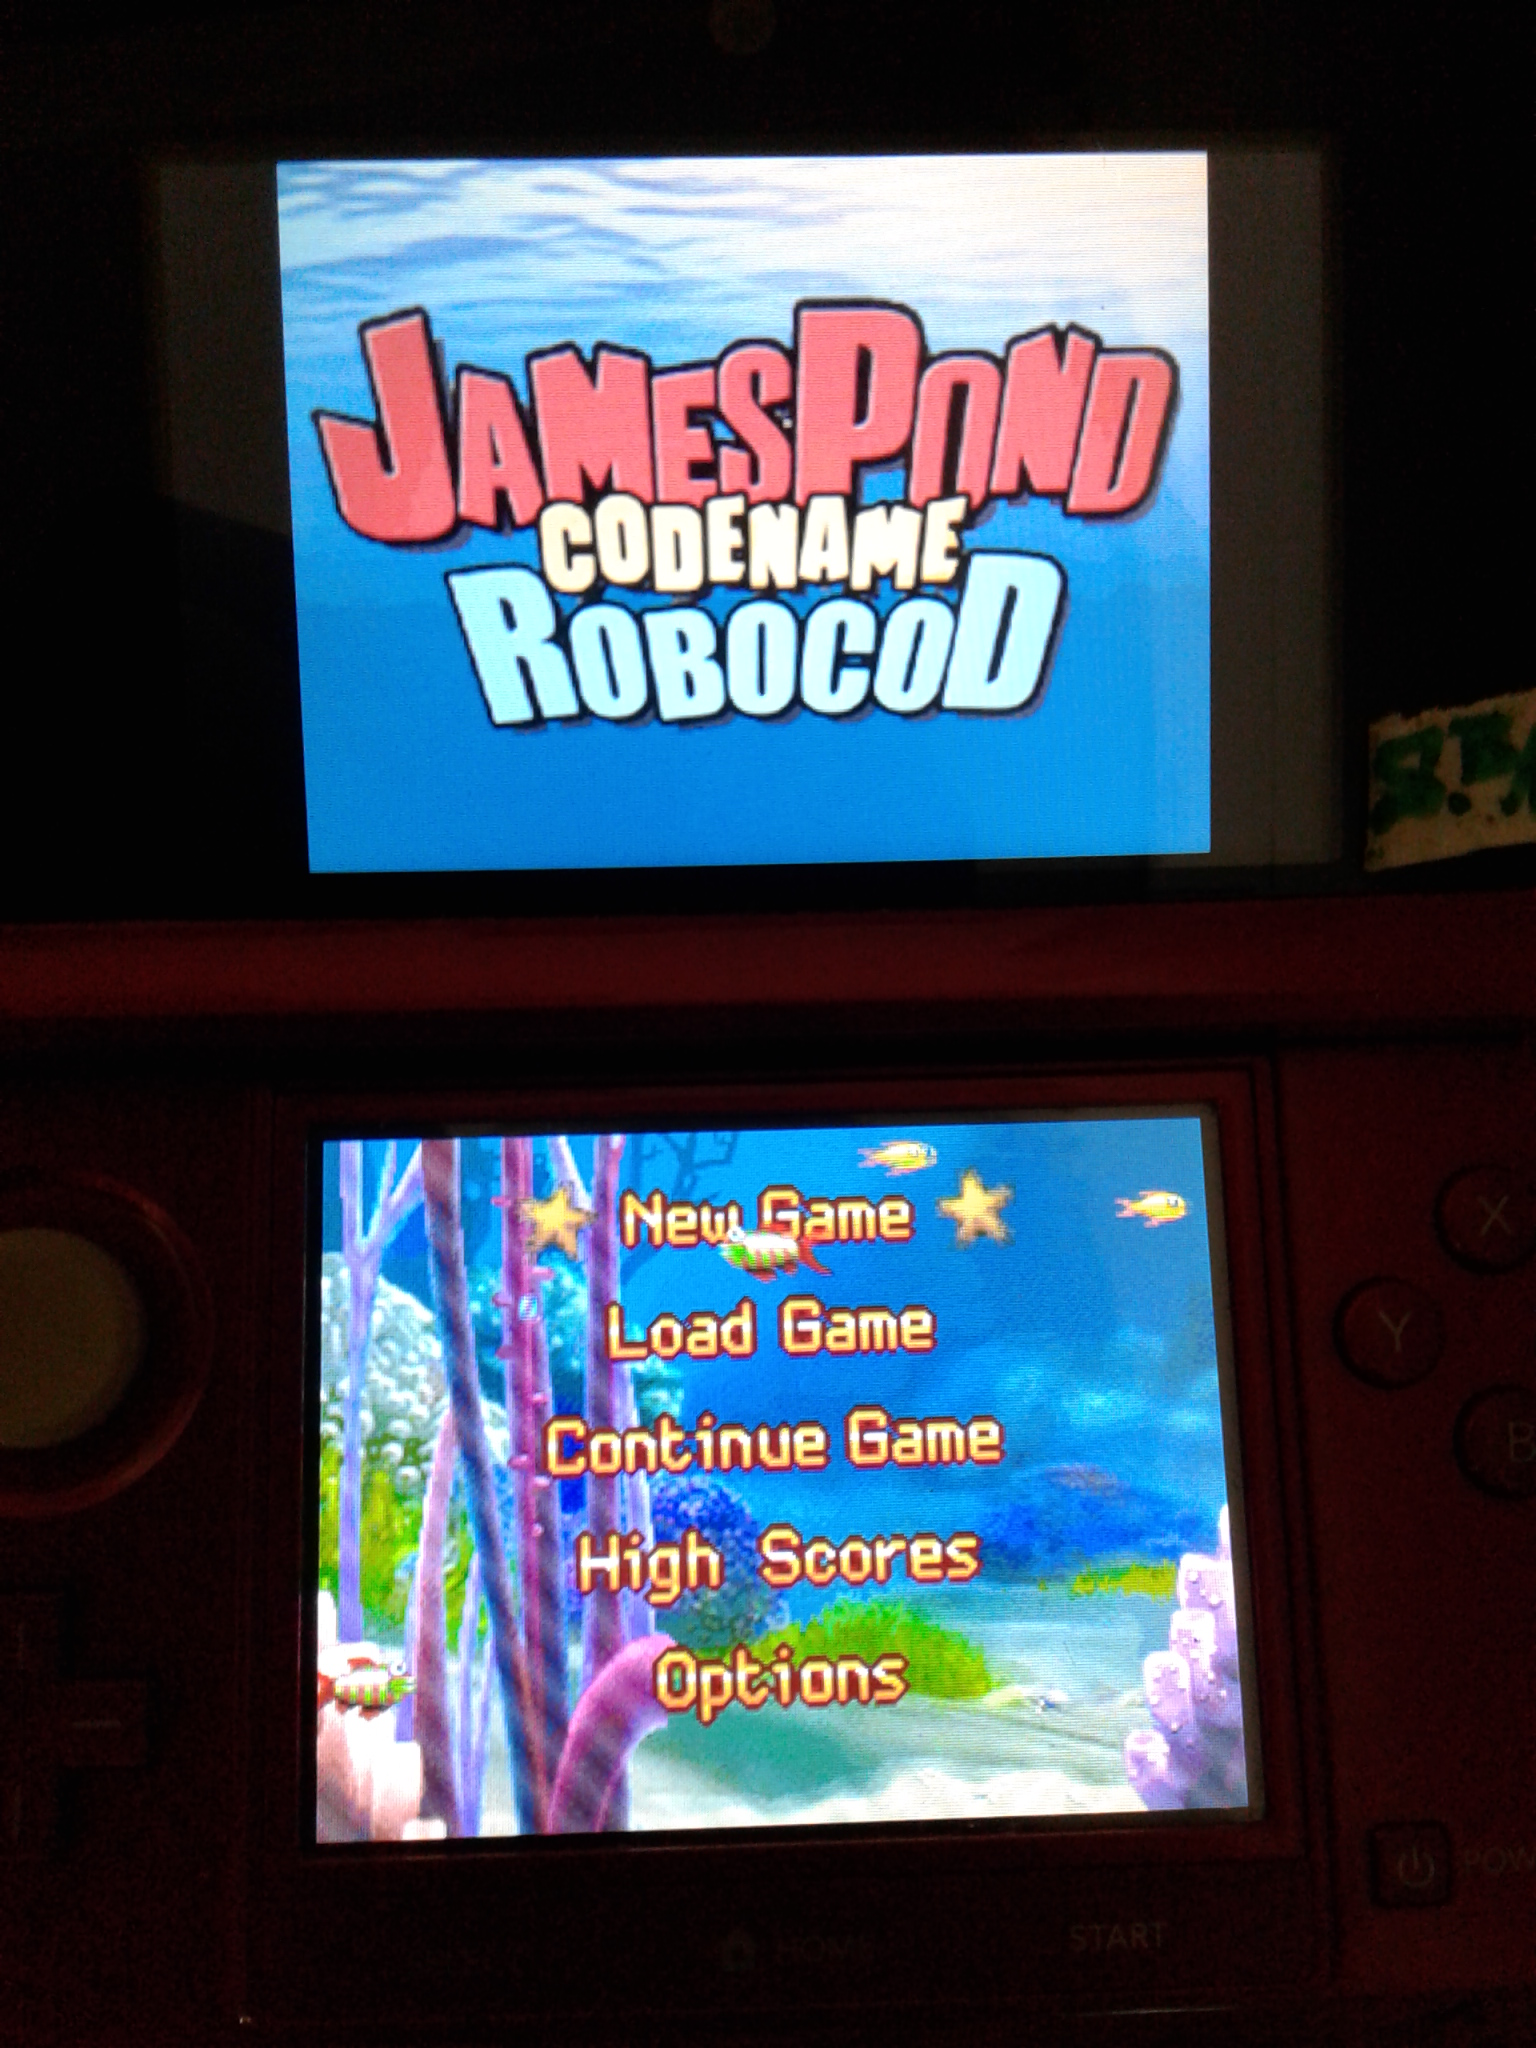 S.BAZ: James Pond: Codename RoboCod (Nintendo DS) 254,300 points on 2020-03-28 09:23:33